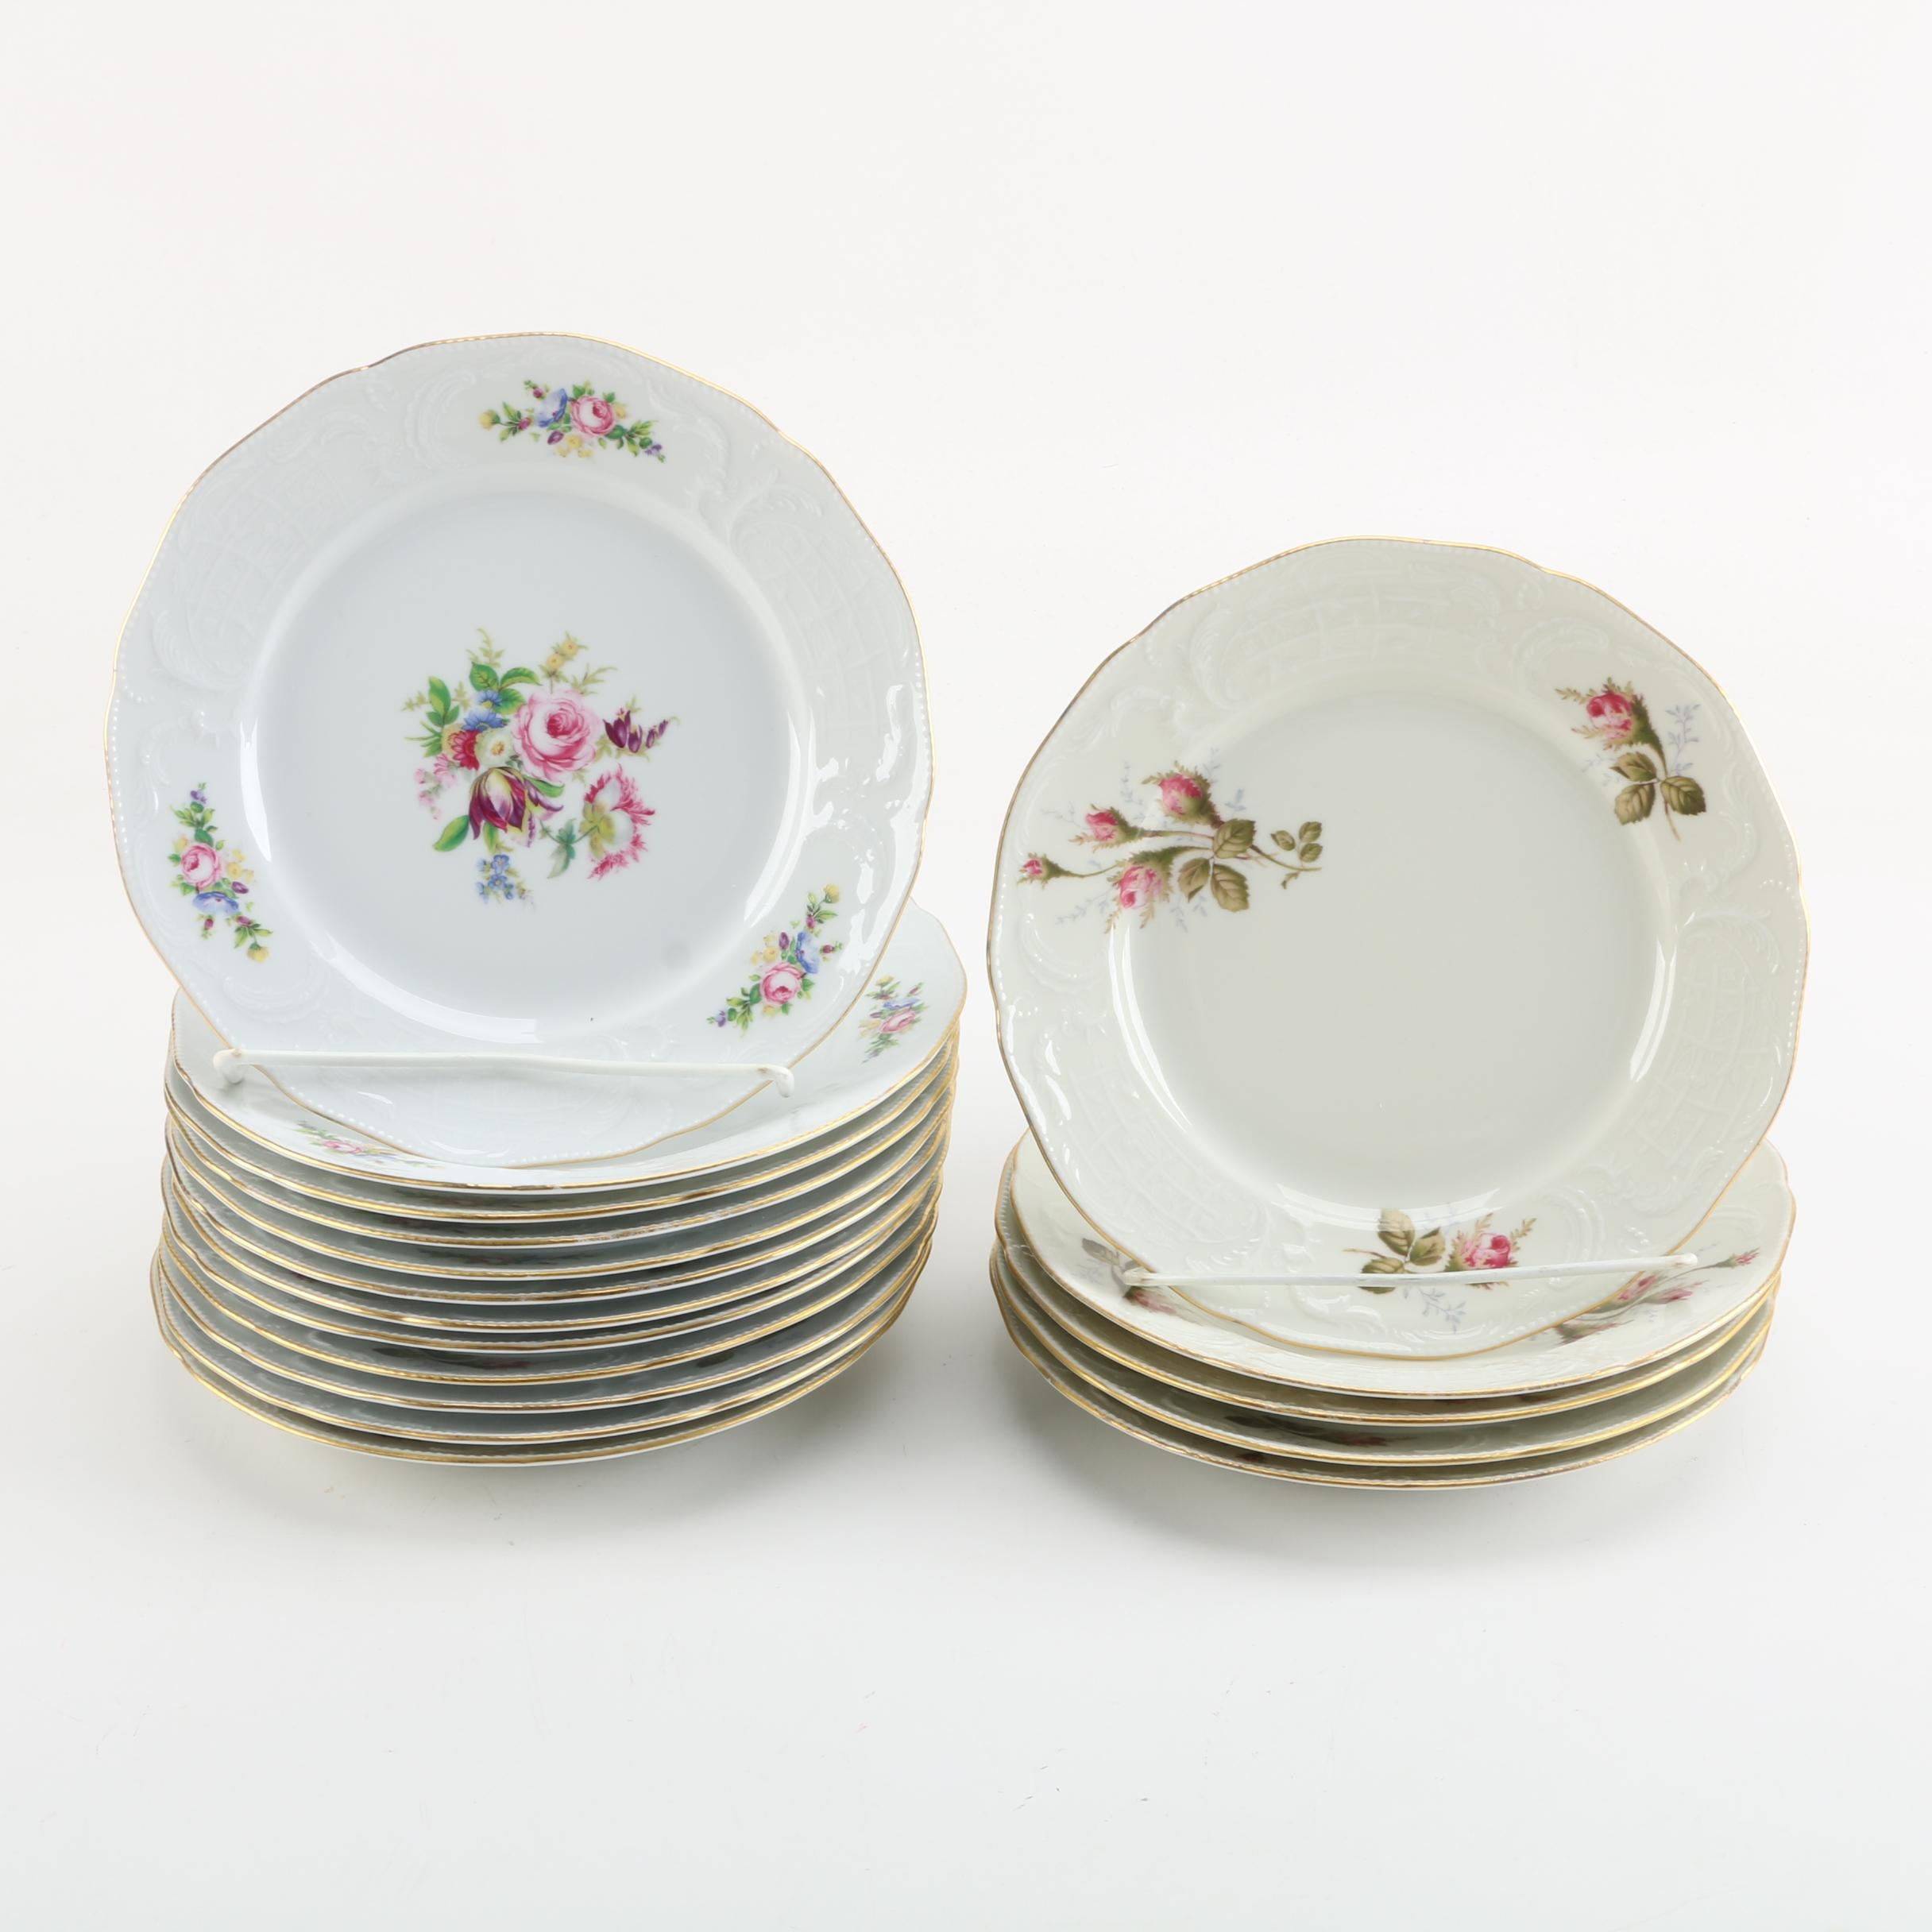 Rosenthal Classic Porcelain Salad Plates : kitchen and tableware - pezcame.com